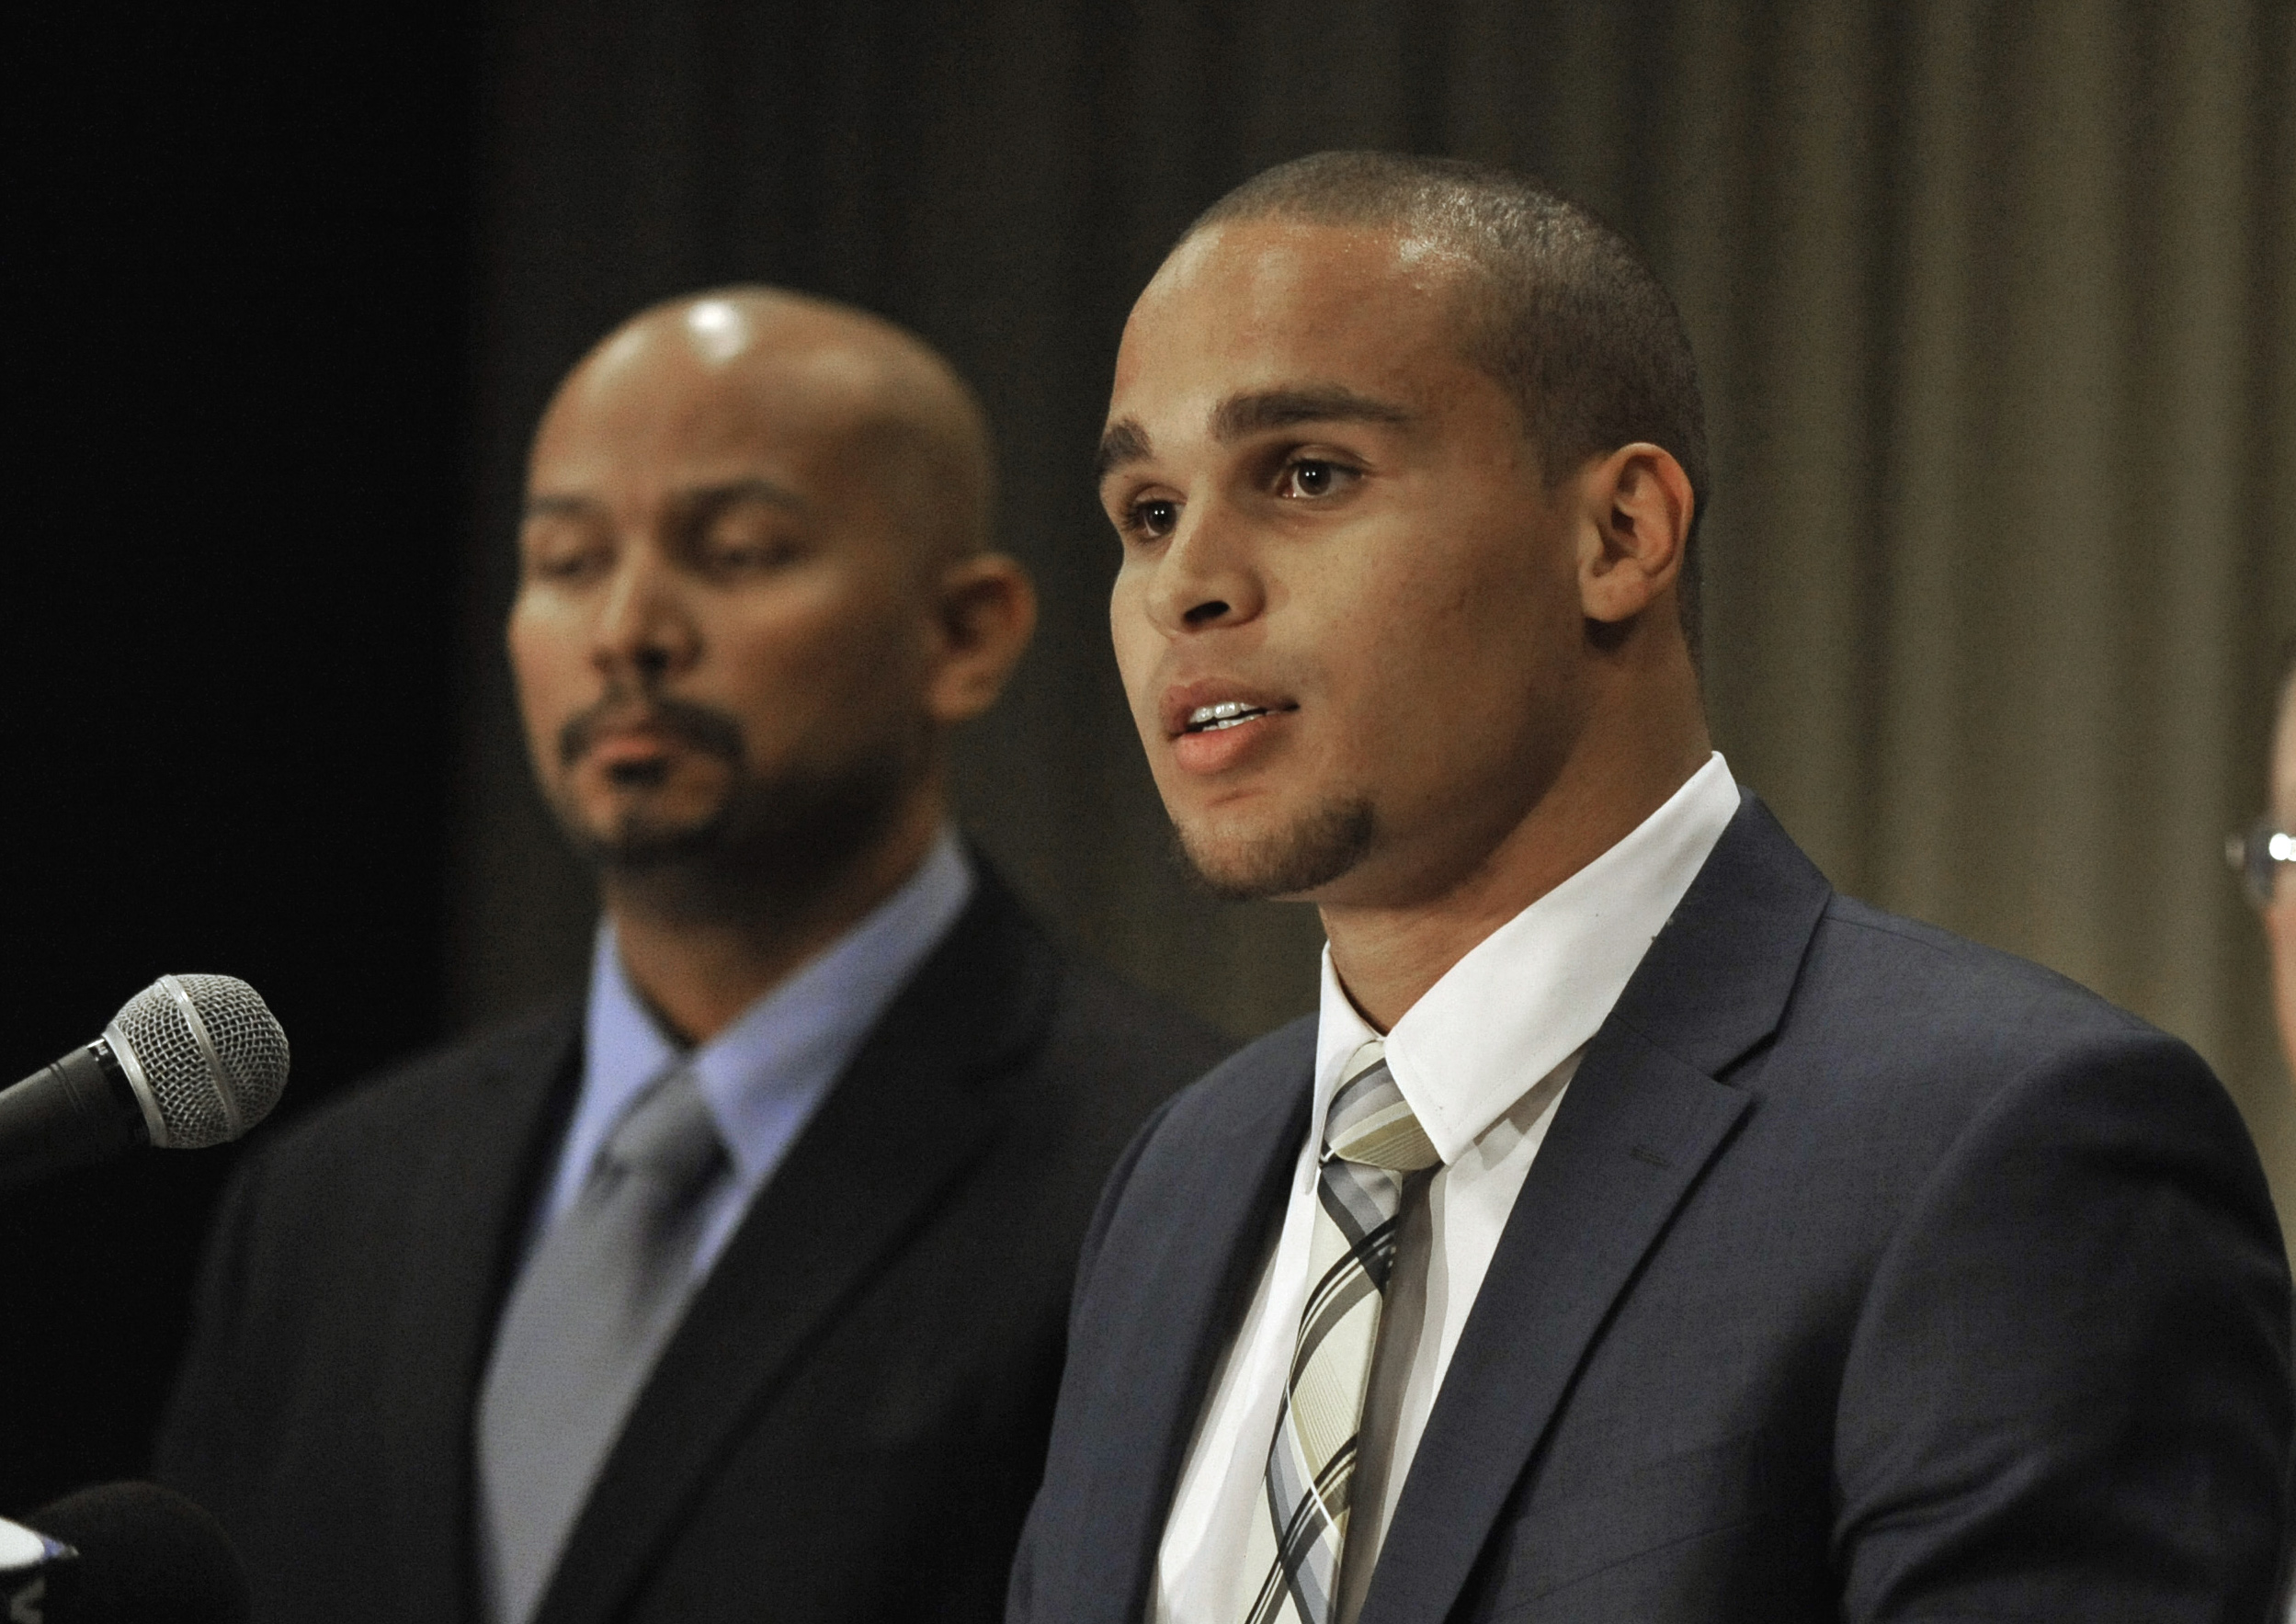 FILE - In this Jan. 28, 2014 file photo, Northwestern quarterback Kain Colter, right, speaks while College Athletes Players Association President Ramogi Huma, listens during a news conference in Chicago. The National Labor Relations Board has dismissed a